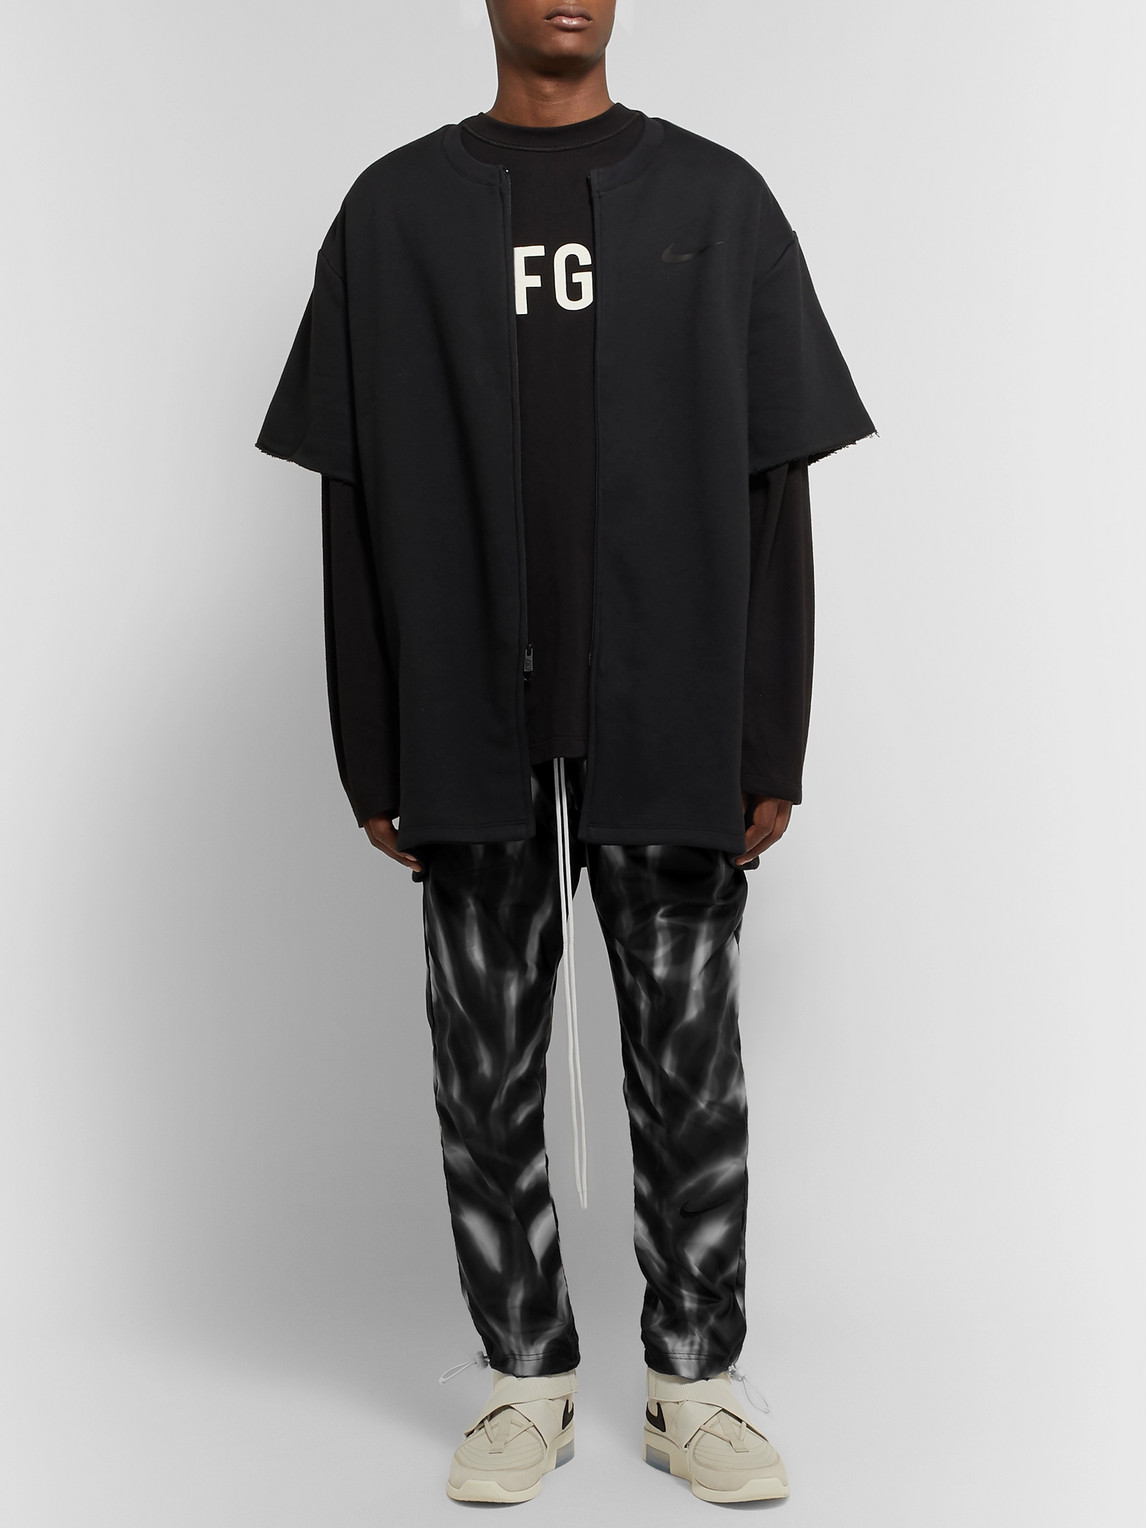 Nike Pants FEAR OF GOD TAPERED PRINTED SHELL TRACK PANTS